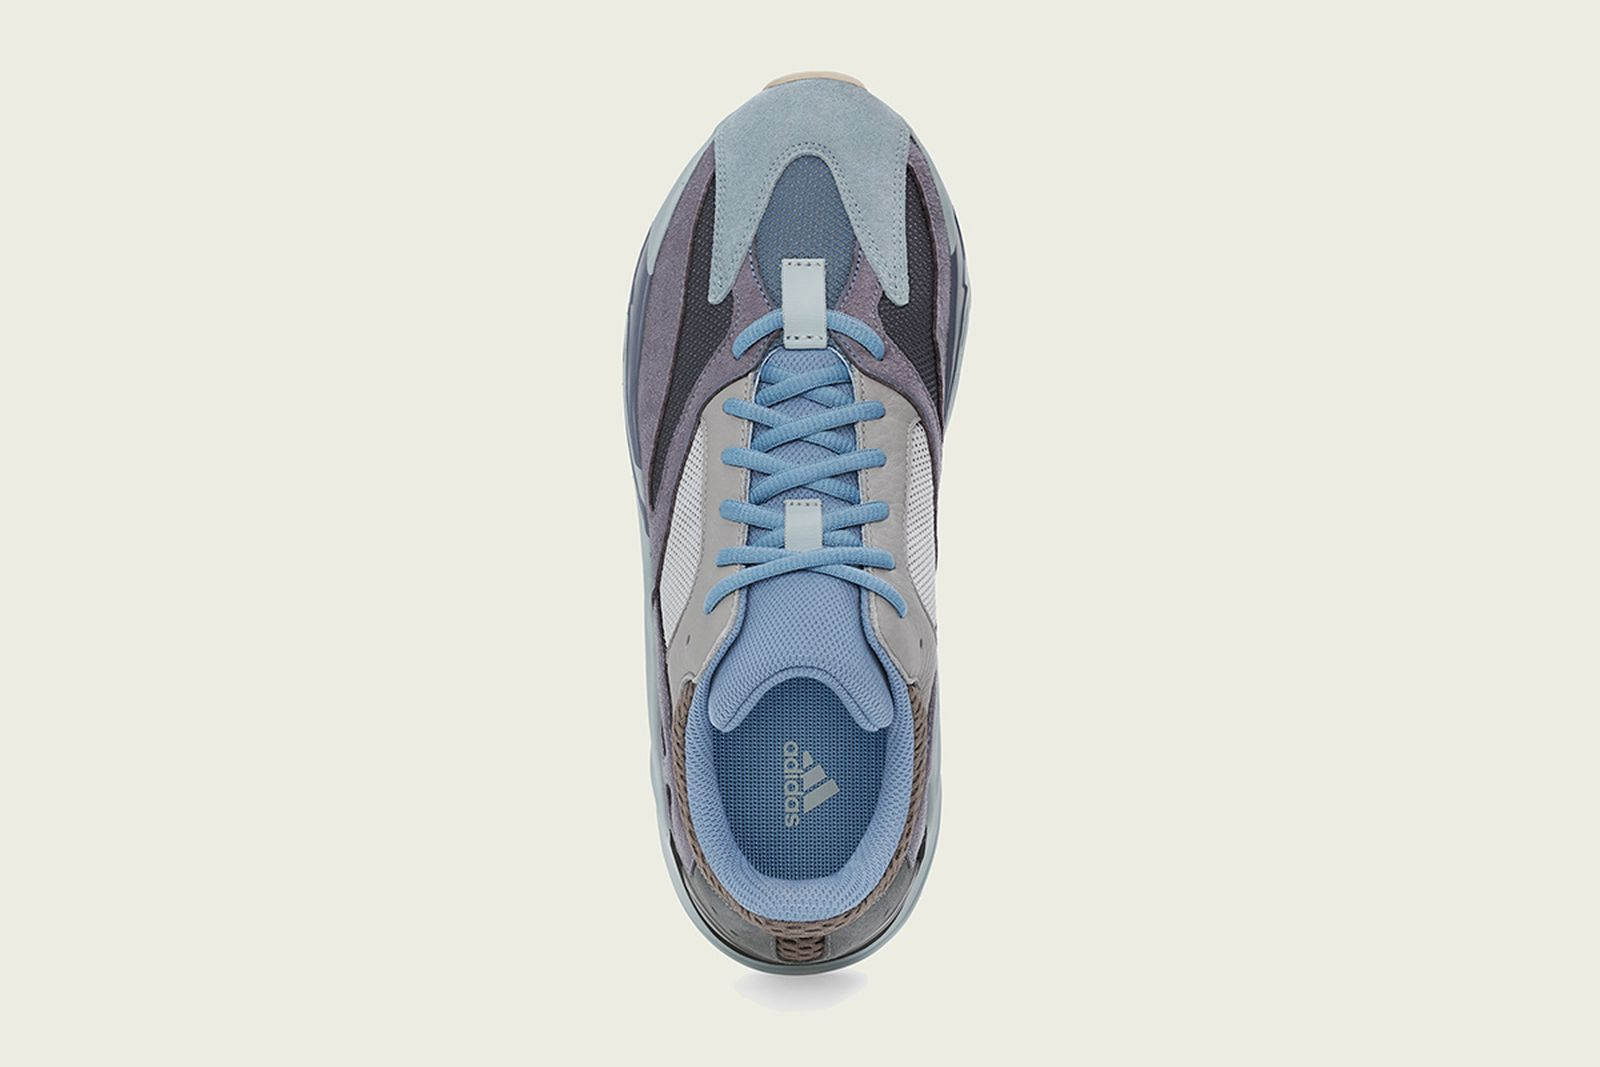 adidas-yeezy-boost-700-carbon-blue-release-date-price-01